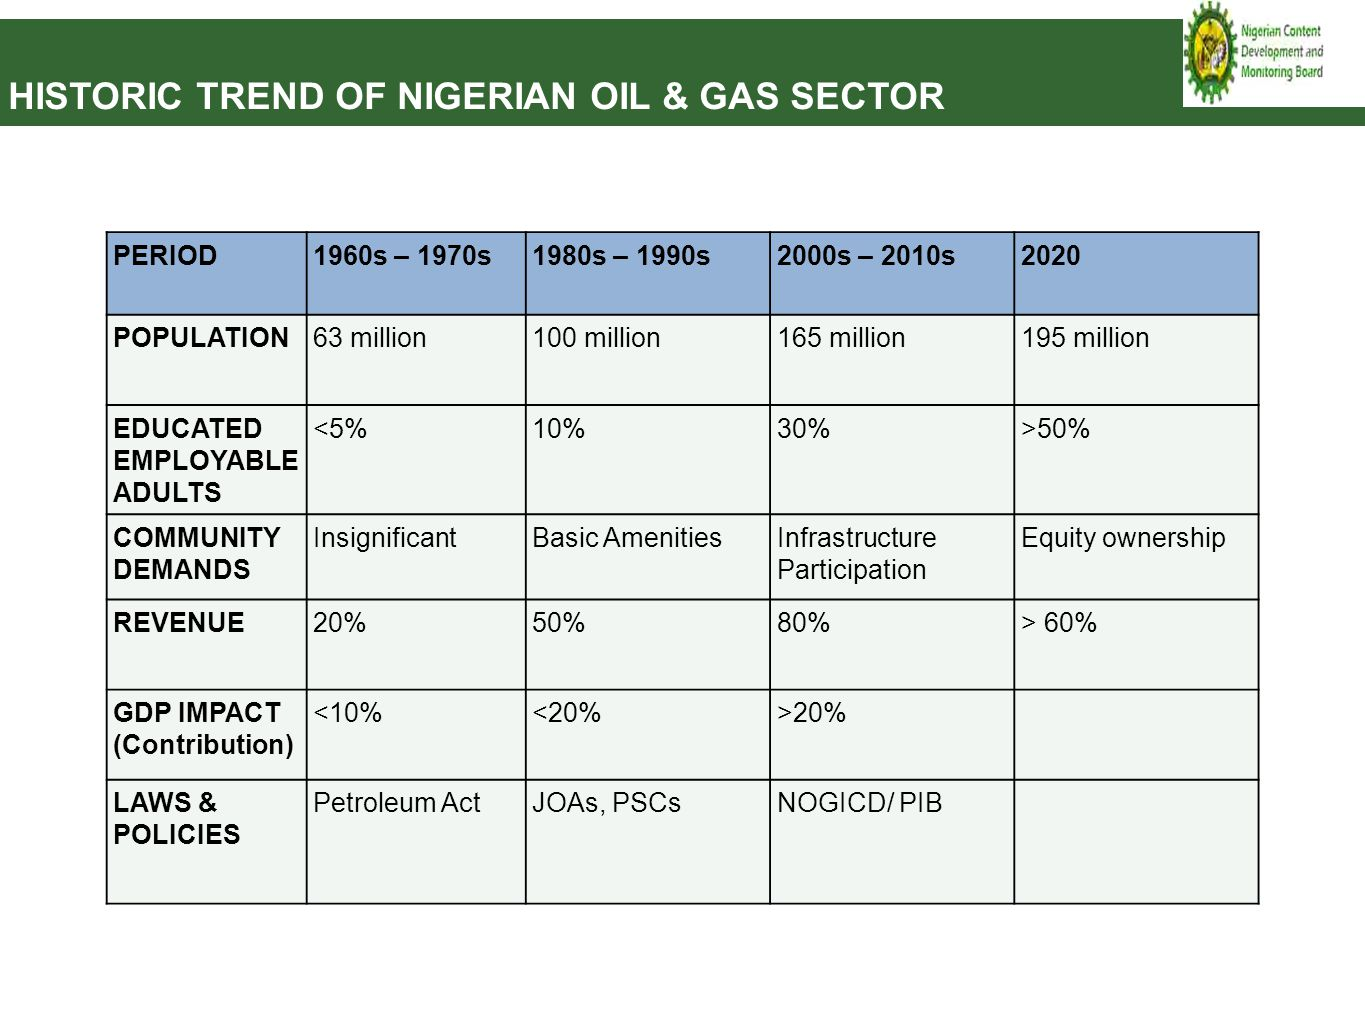 ORAS – Offshore Rig Acquisition and Utilization Key elements of ORAS Strategy: 1.Using a Nigerian Operating Company for Contracting 2.Putting equipment and technology in the Company 3.Phased increase in indigenous equity to meet Acts requirement of 50% 4.Assisting with long term funding and equity Financing